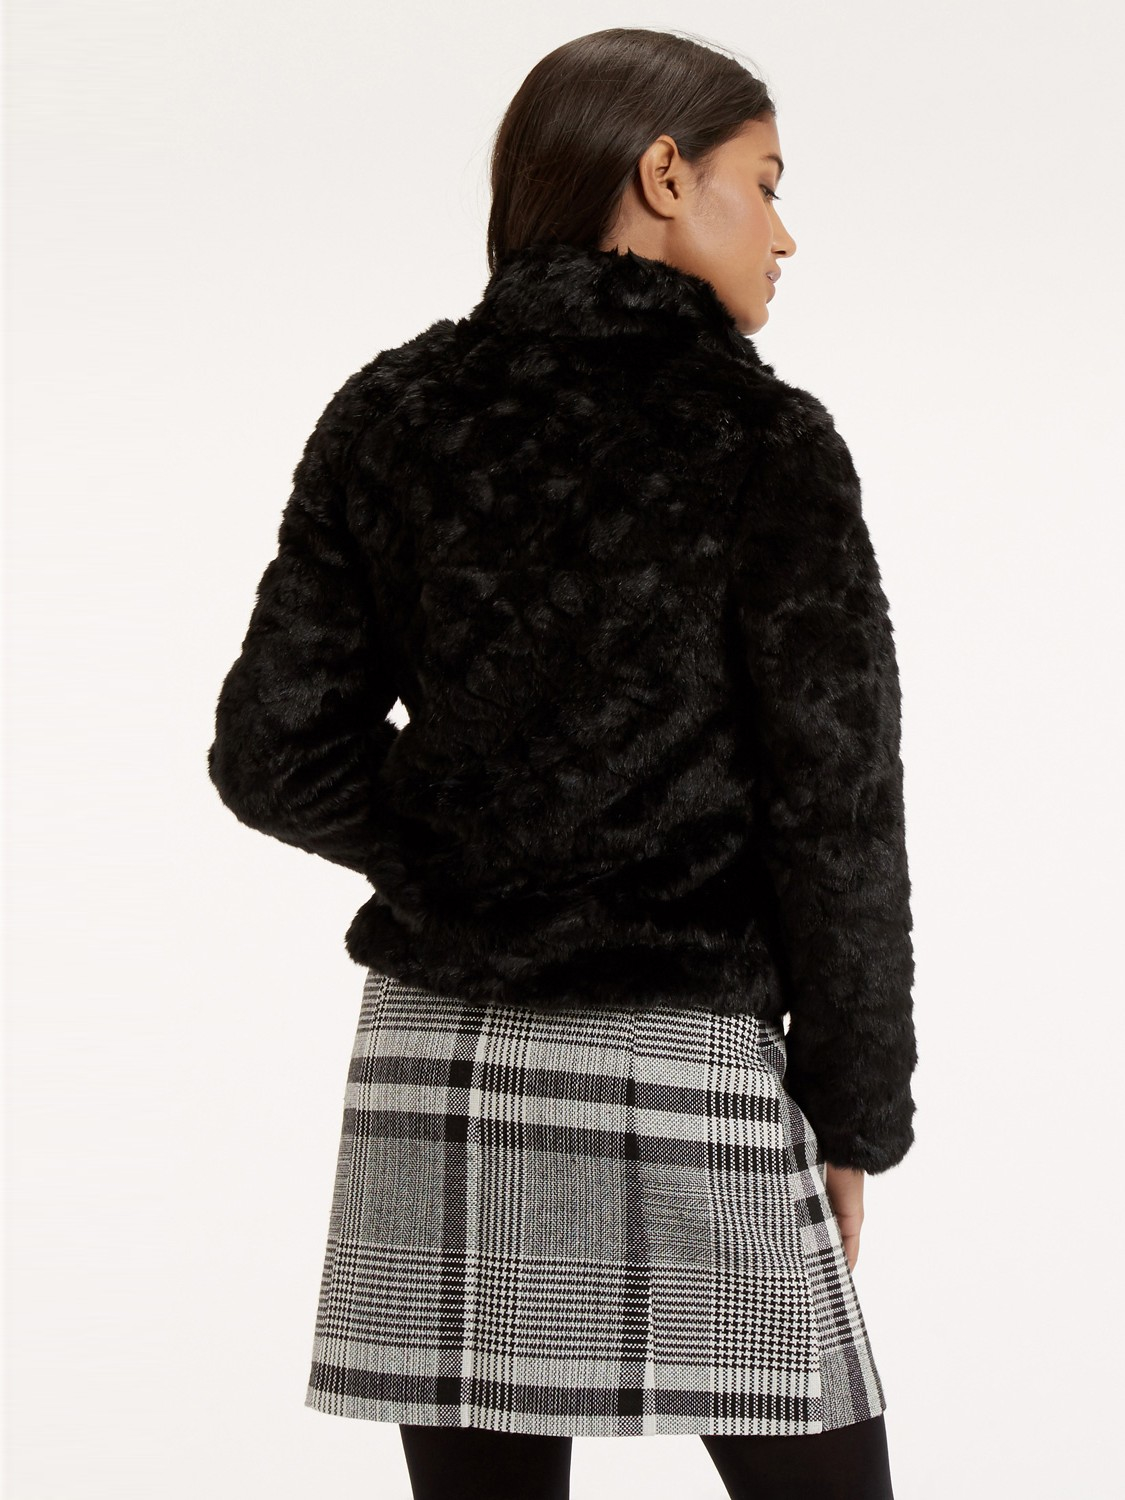 Black Short Faux Fur Coat - Tradingbasis